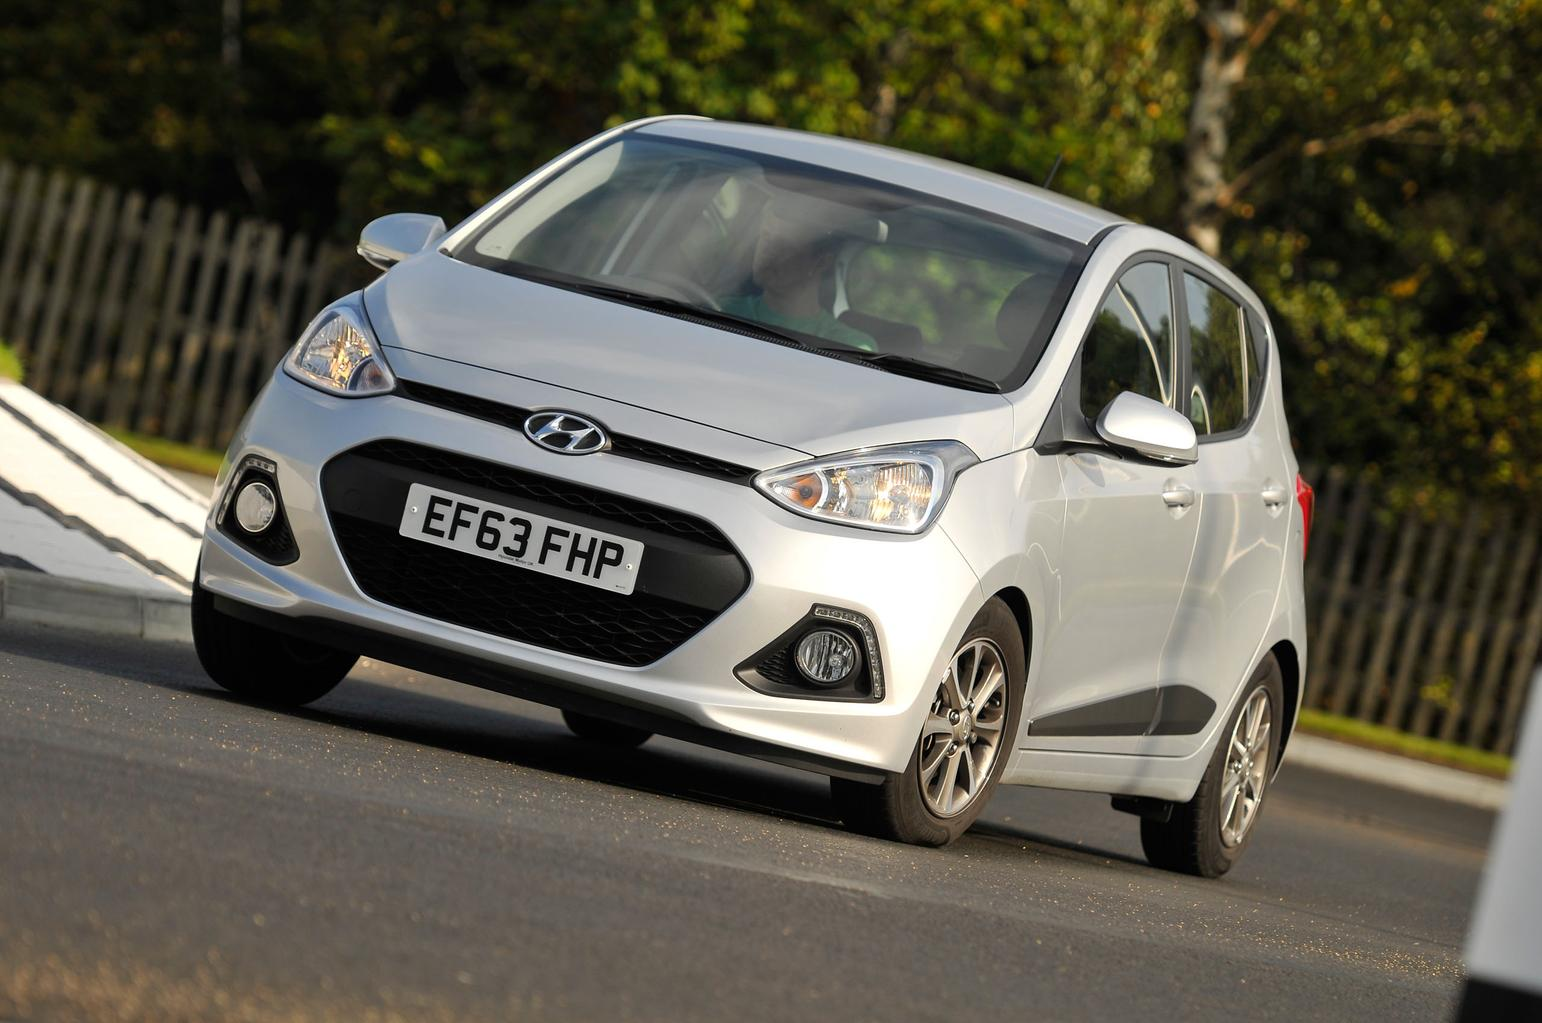 10 reasons to buy a Hyundai i10